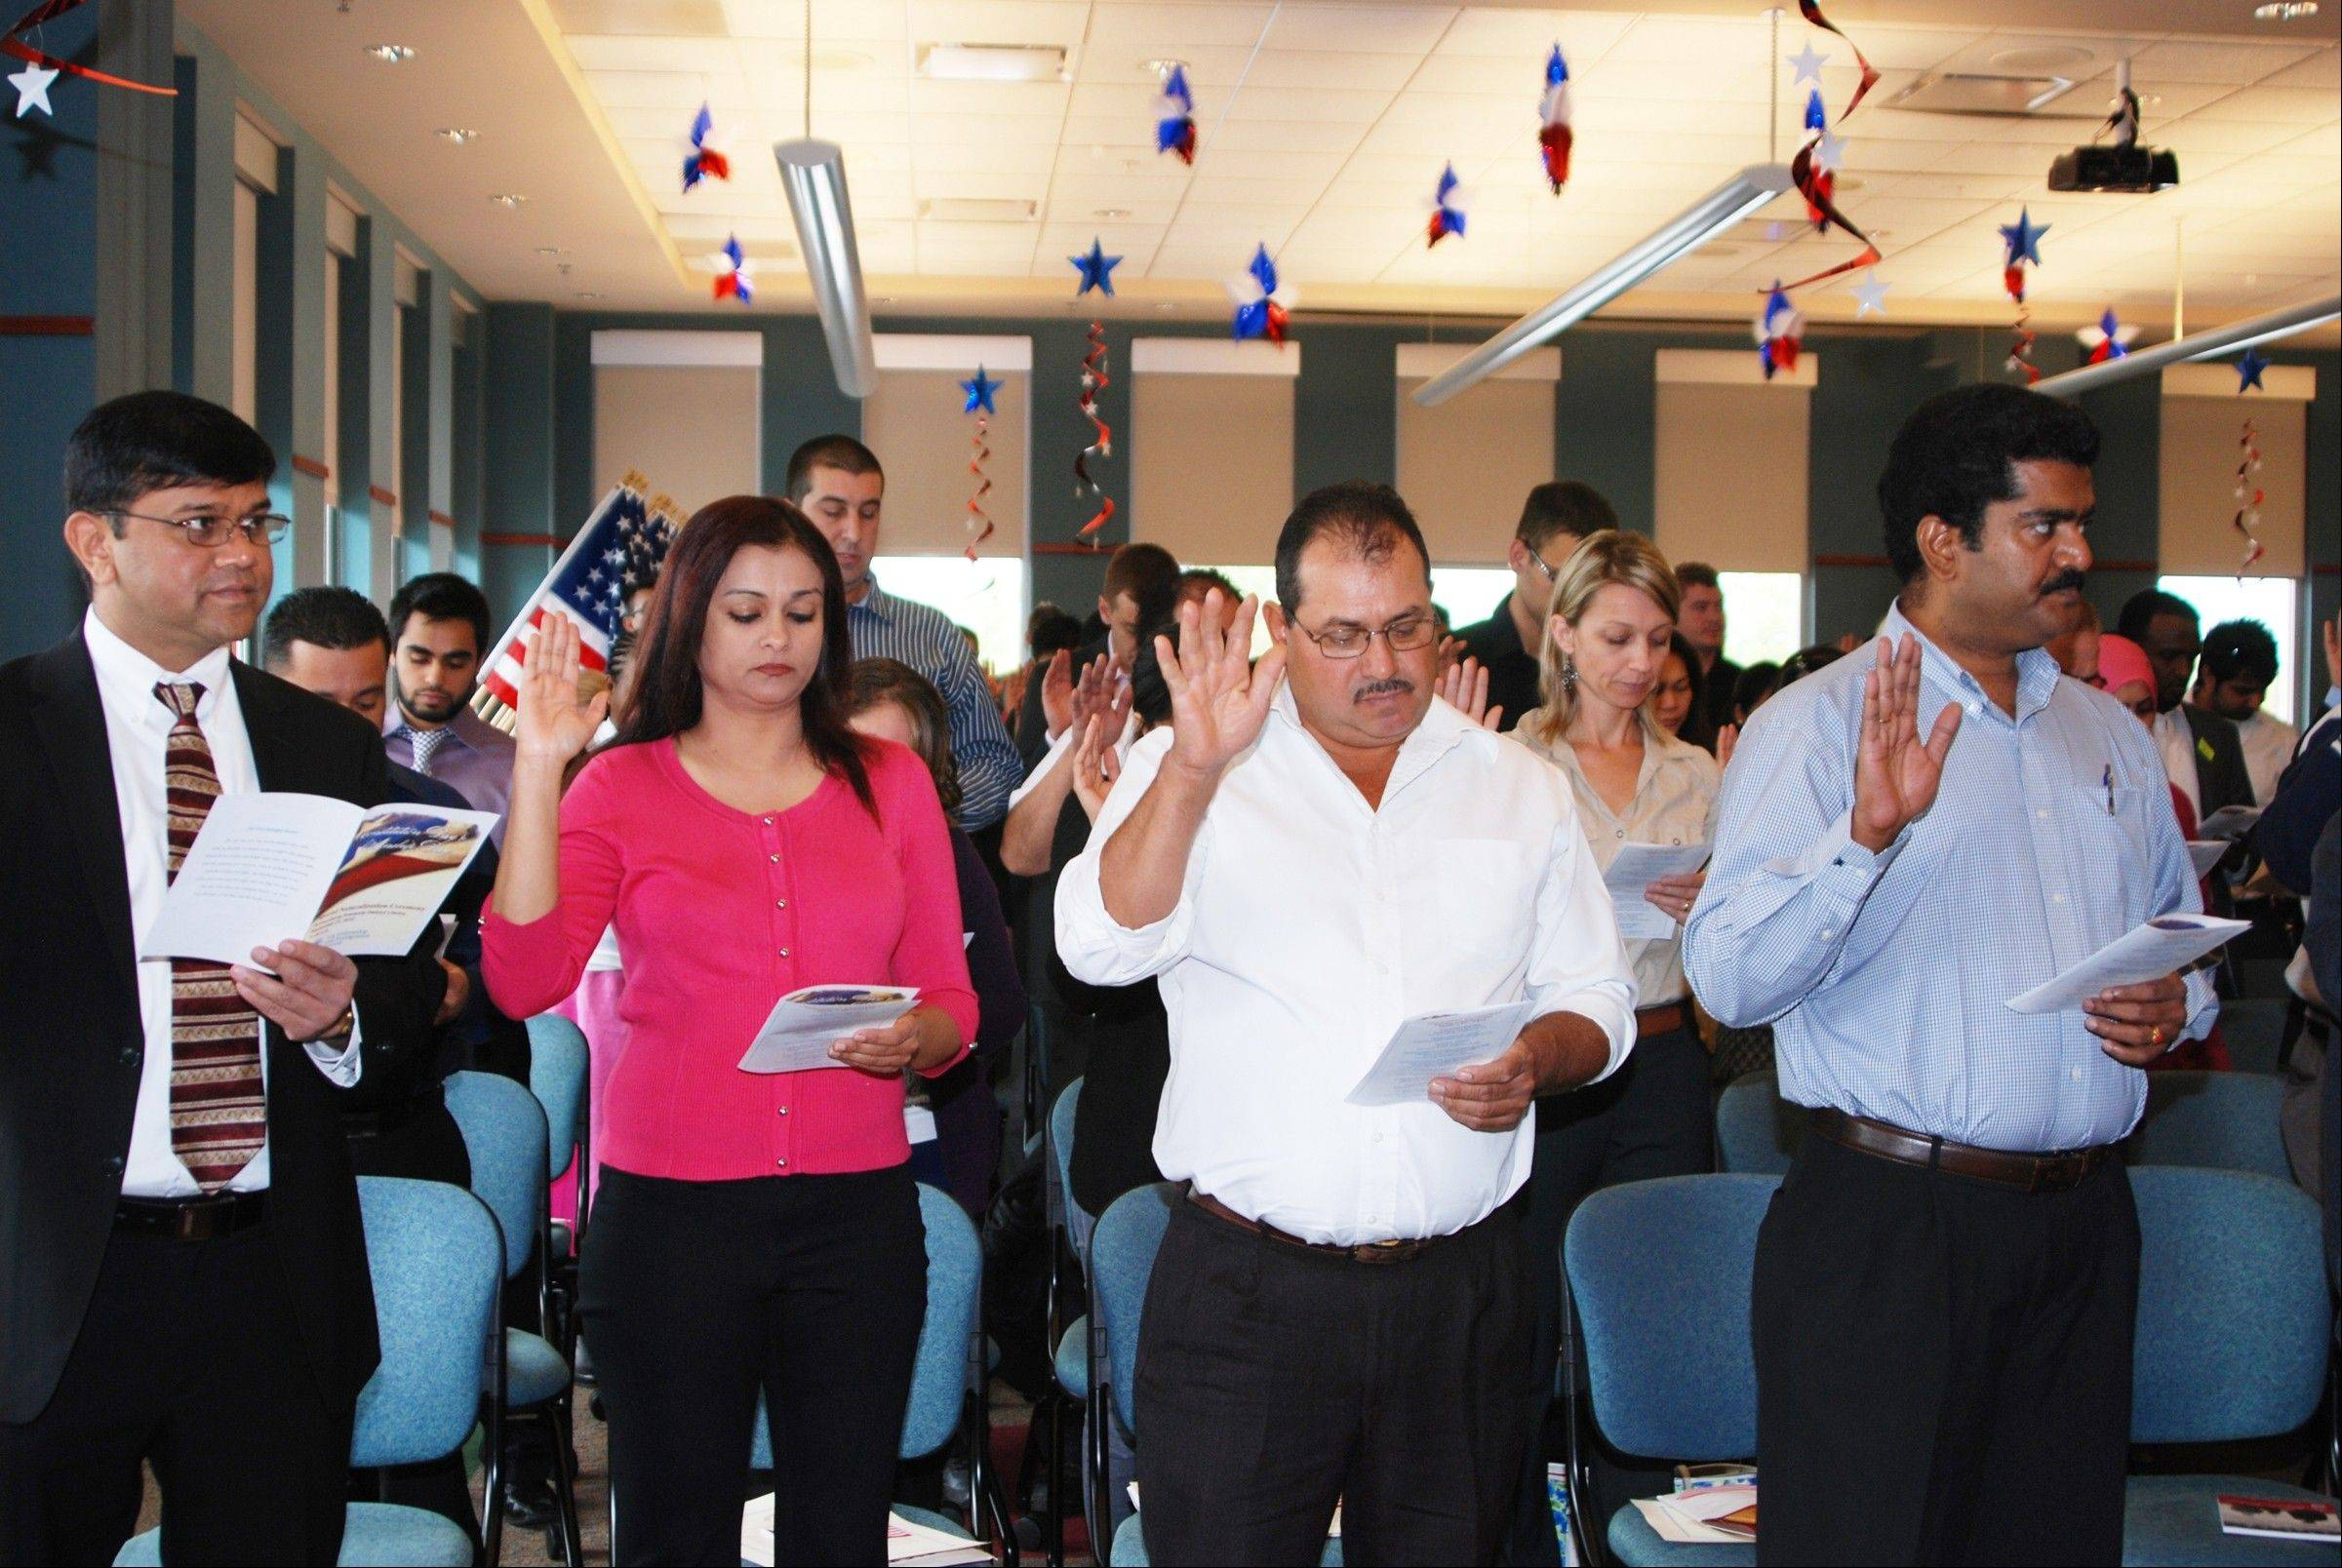 On Sept. 21, 82 immigrants took the Oath of Allegiance at the Schaumburg Township District Library.